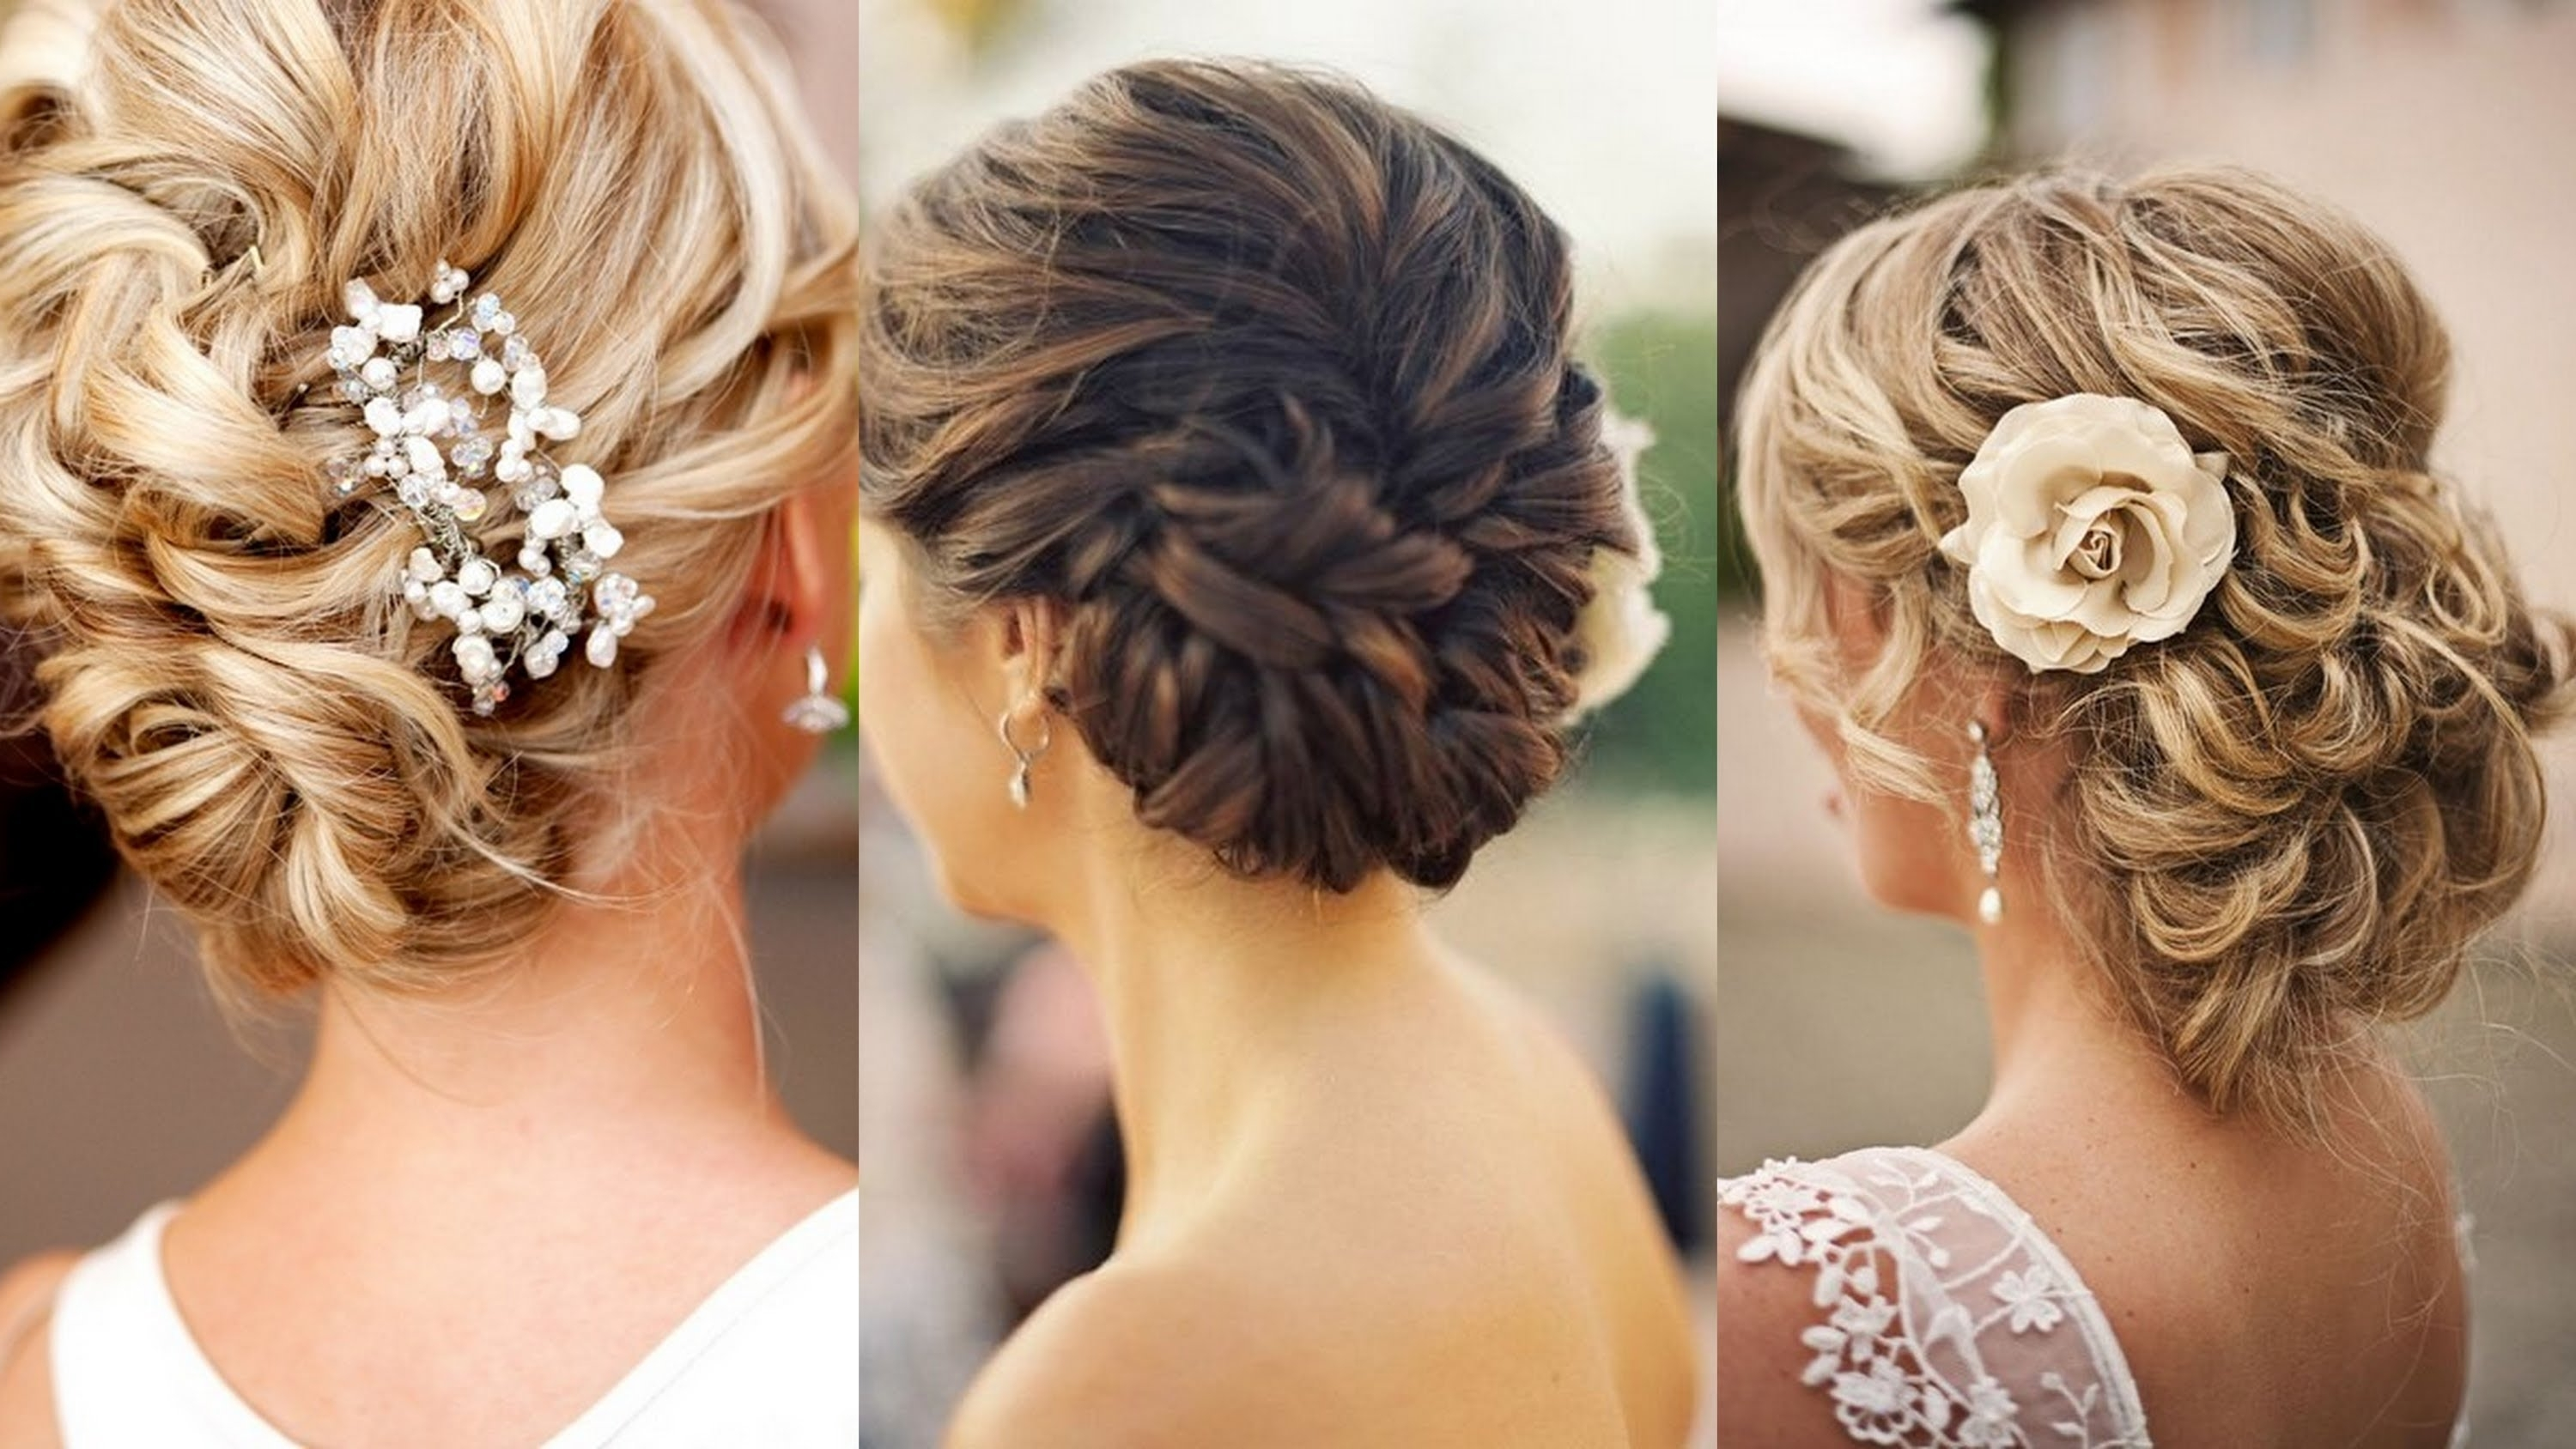 15 Glamorous Wedding Updos – Youtube With Regard To Updo Hairstyles For Wedding (View 1 of 15)